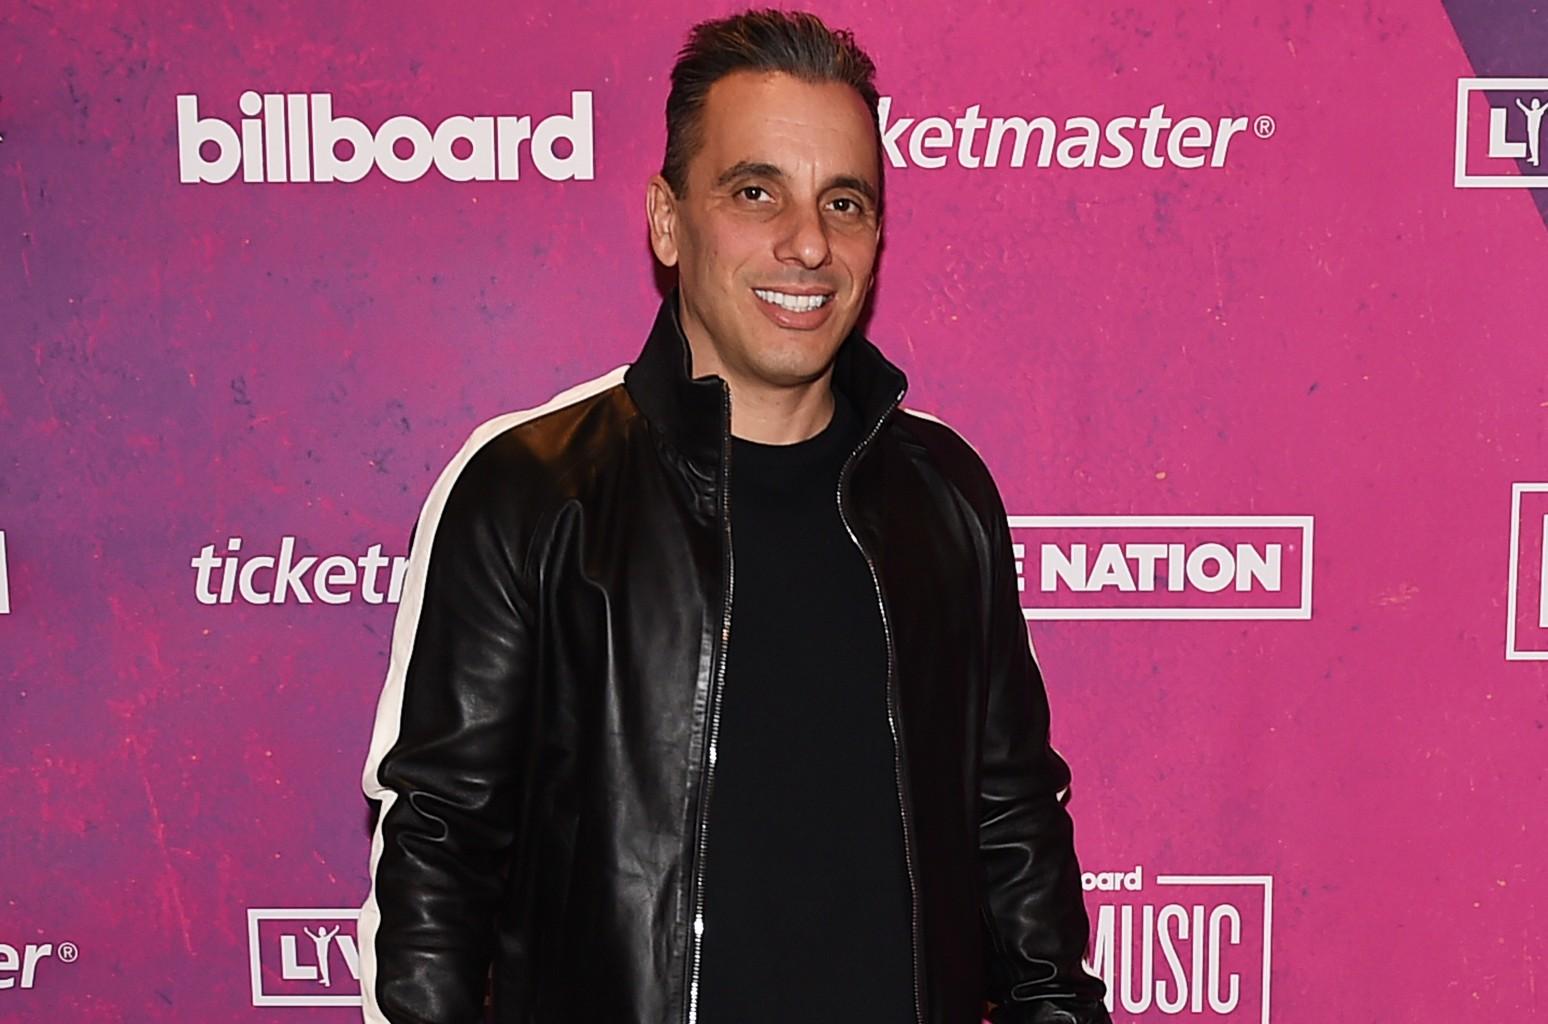 Sebastian Maniscalco photographed at the 2018 Billboard Live Music Summit + Awards at the Montage Beverly Hills on Nov. 14, 2018 in Beverly Hills, Calif.